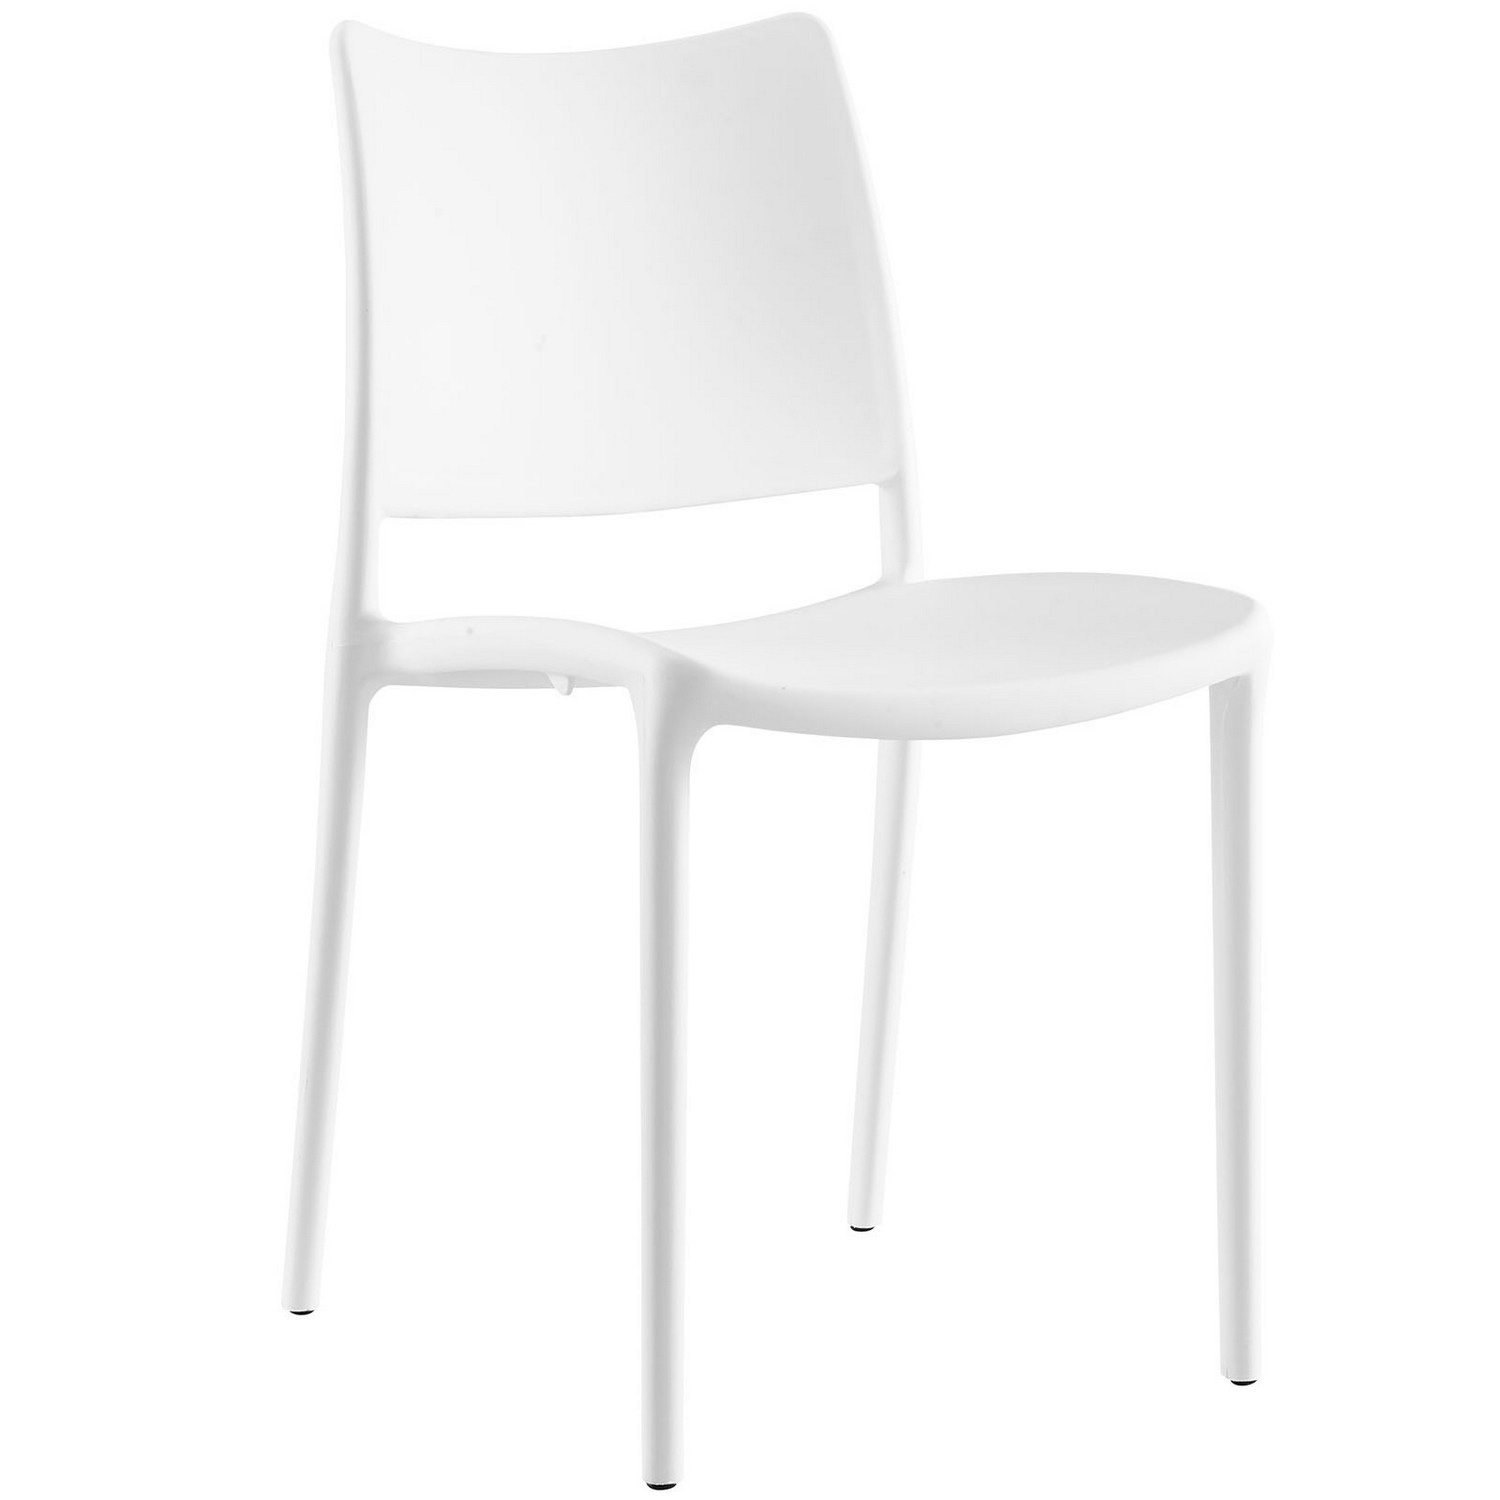 Modway Hipster Dining Side Chair - White